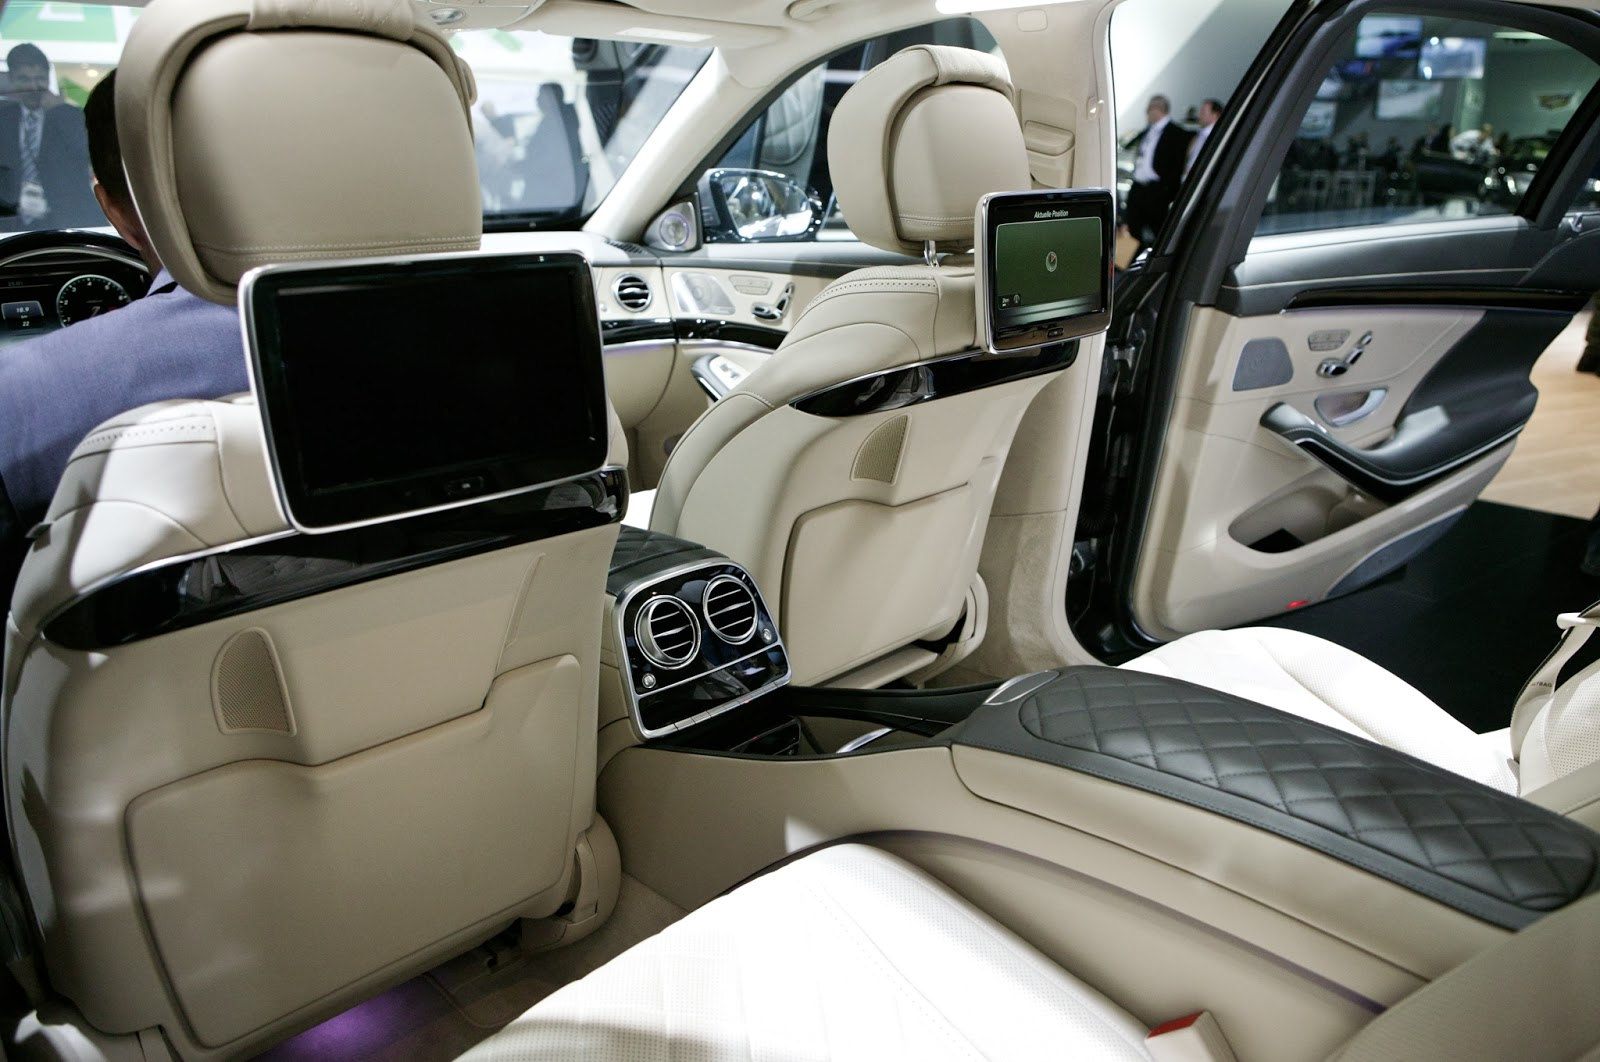 mercedes benz revives the maybach with the 2015 mercedes s600 - 2015 Mercedes S600 Interior